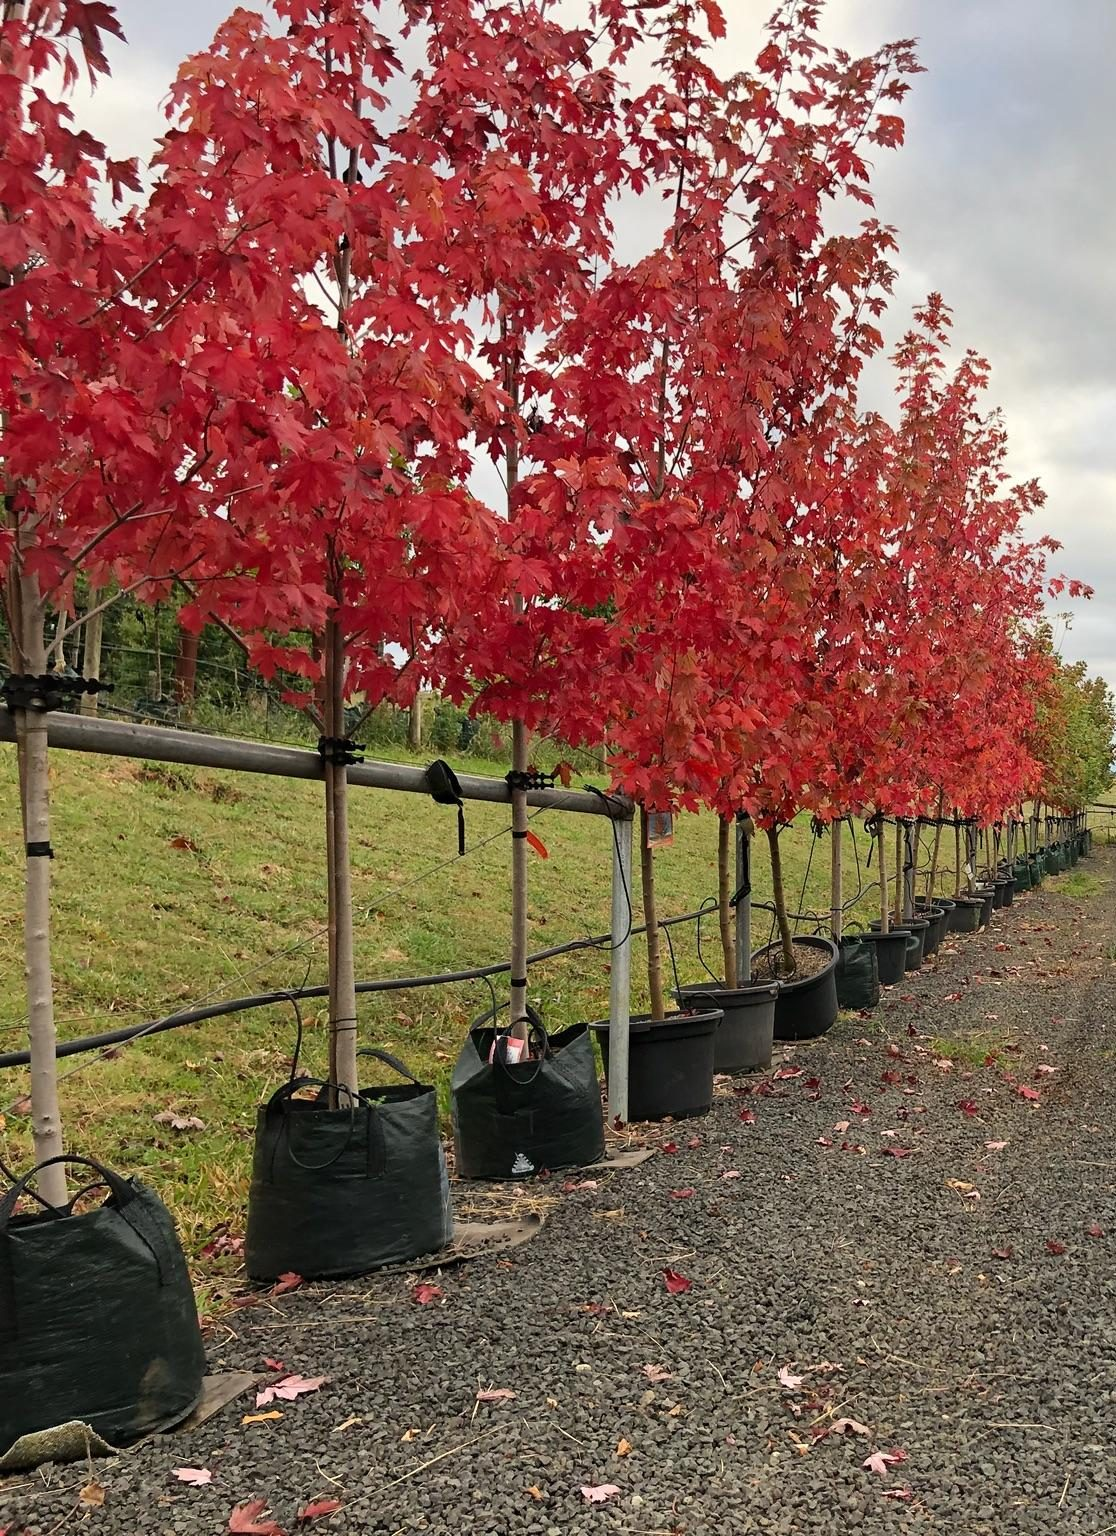 Acer x freemanii 'Jeffsred' 'Autumn Blaze'